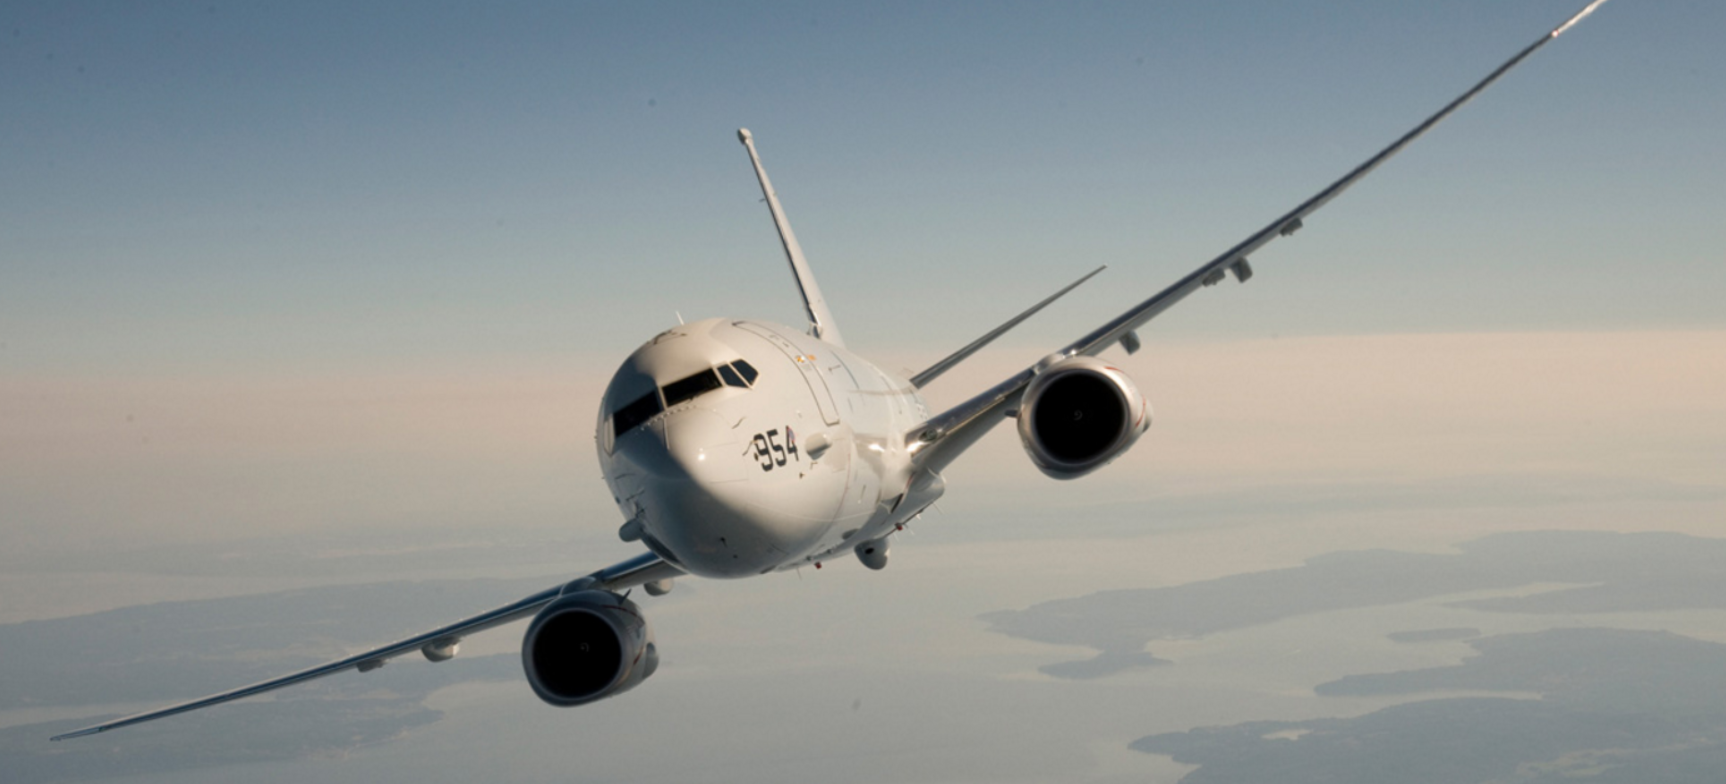 Tata will produce P-8 components for Boeing